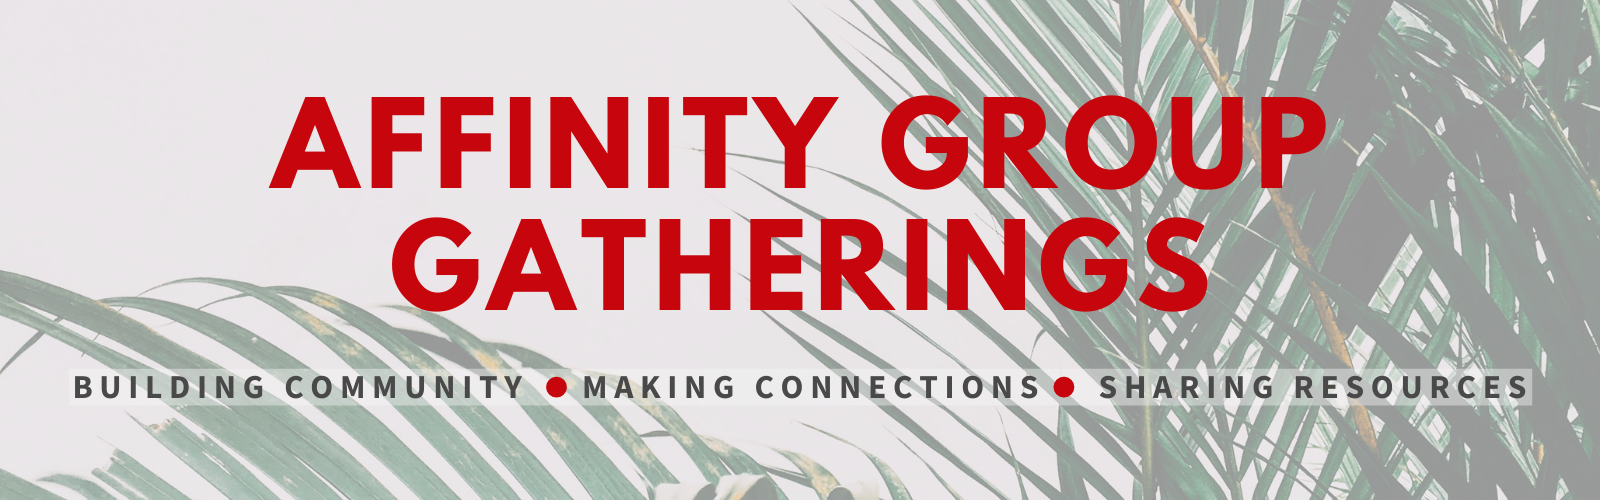 "Big red letters reading ""Affinity Group Gatherings: Building Community 